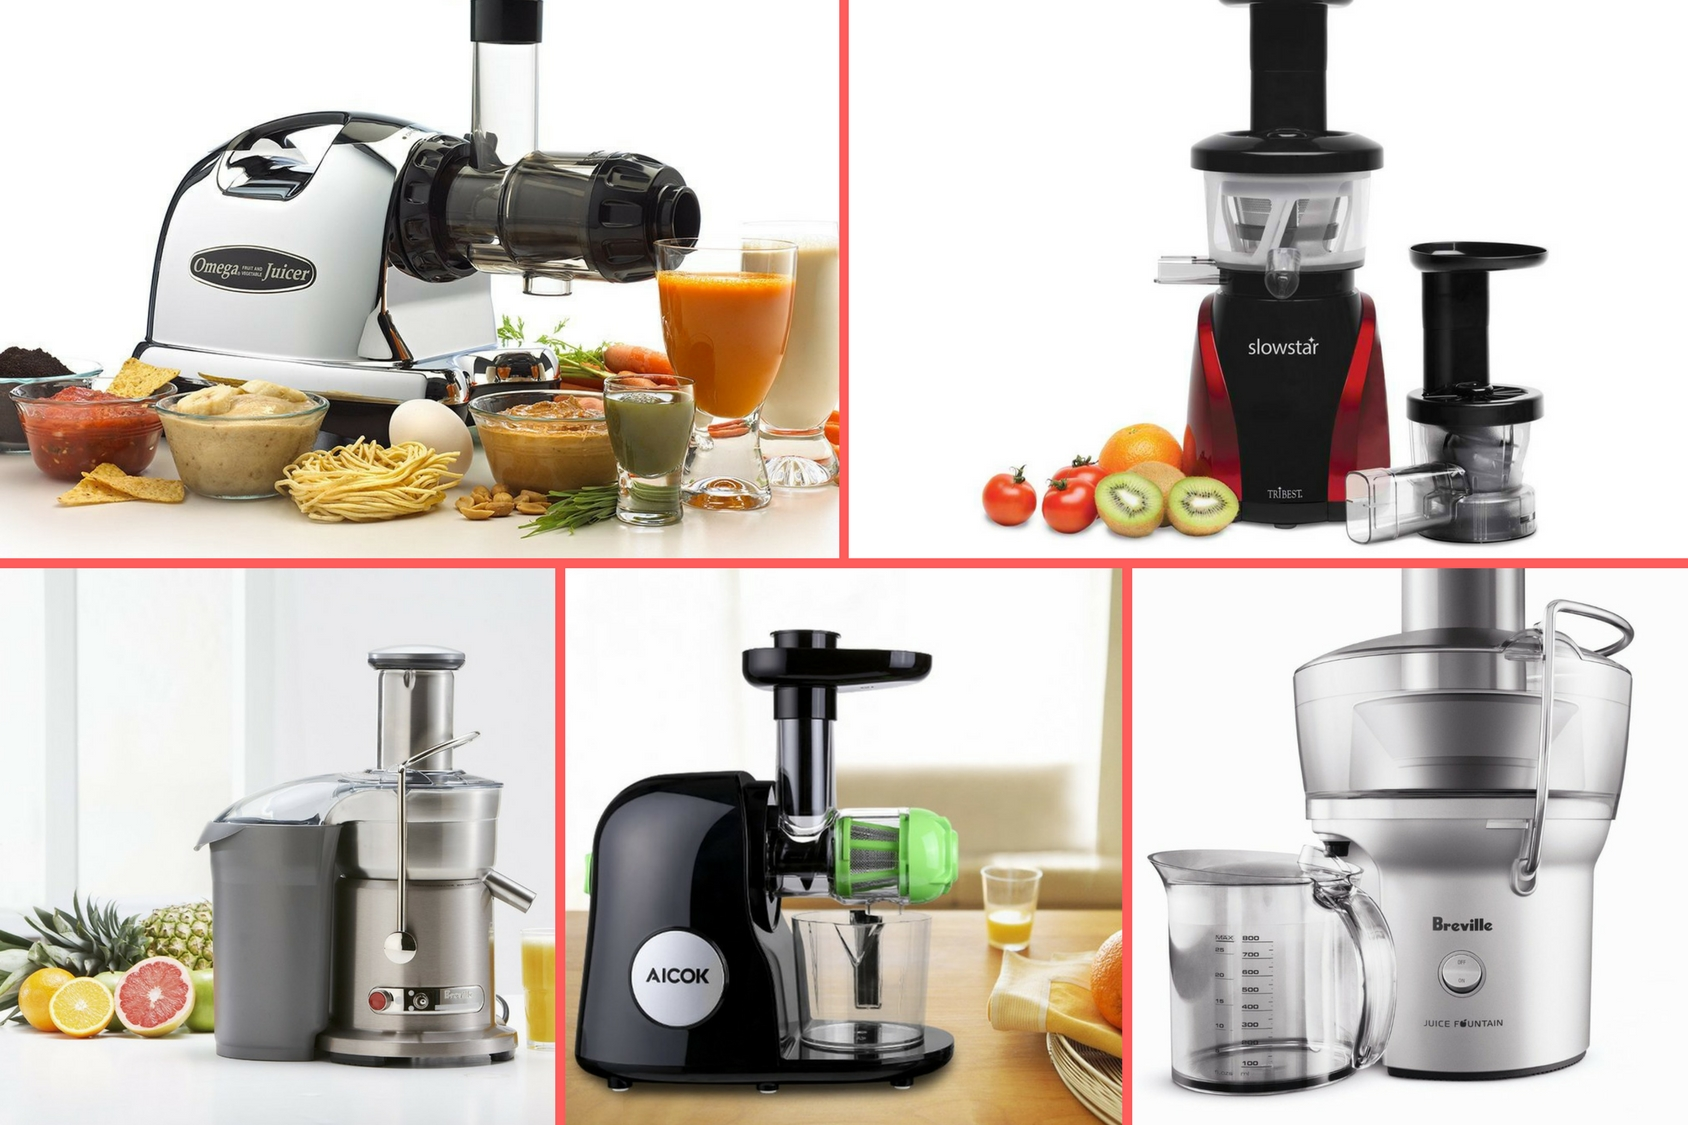 Best Masticating Juicer 2017 : Best Juicer Reviews Of 2017 ~ The Juice Authority